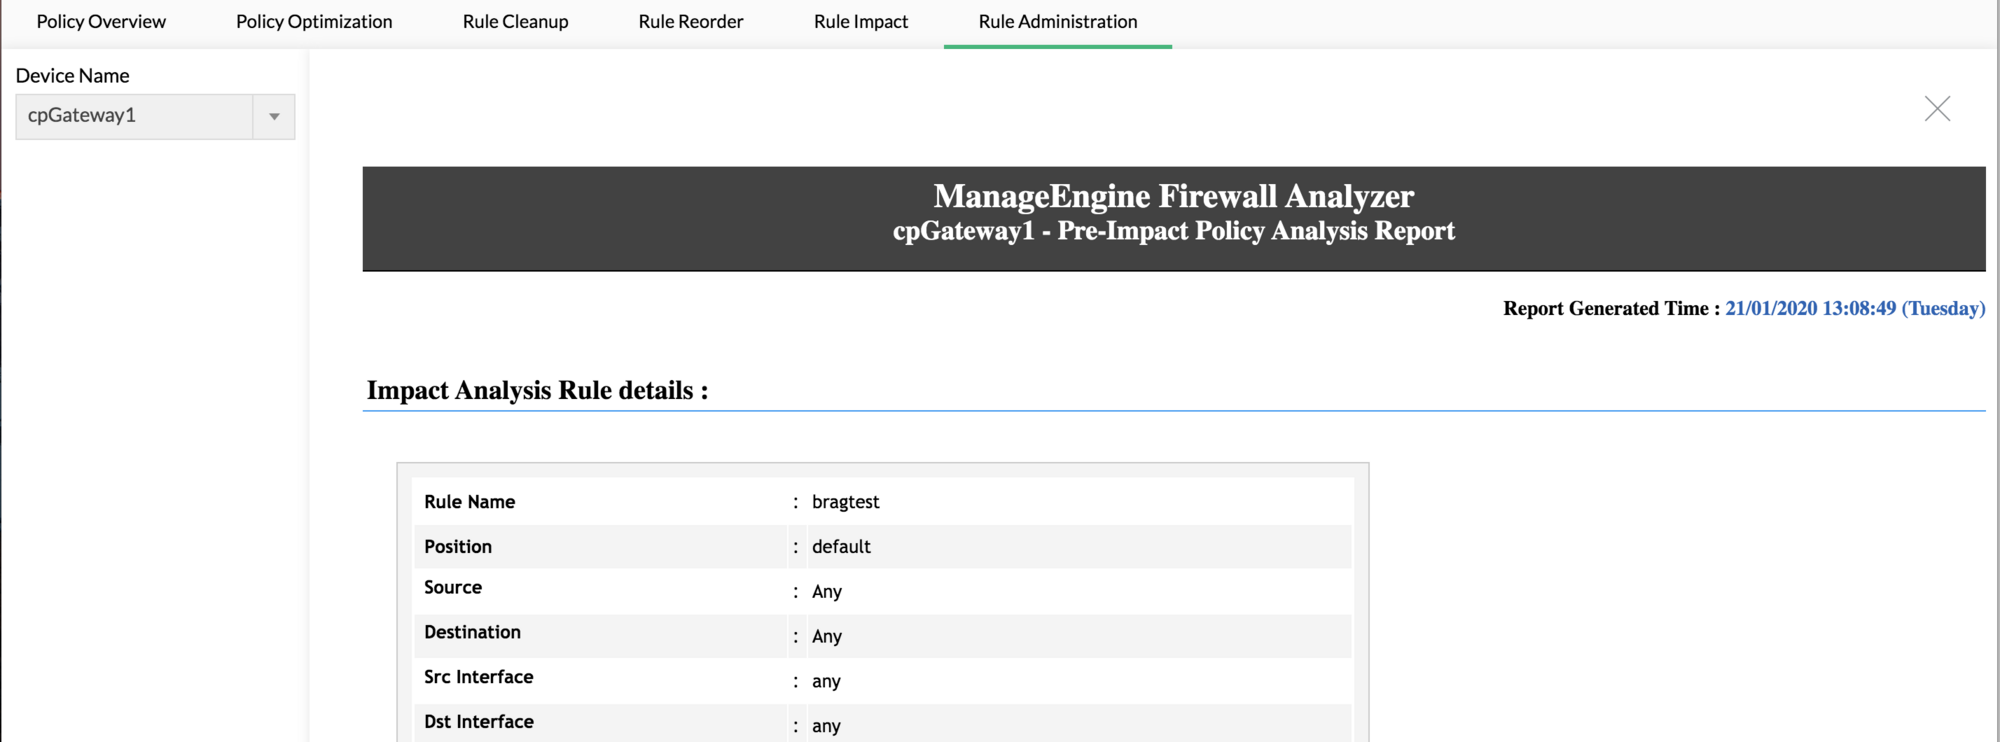 Review impact of firewall rule over existing rule set - Configuring firewall rules - ManageEngine Firewall Analyzer